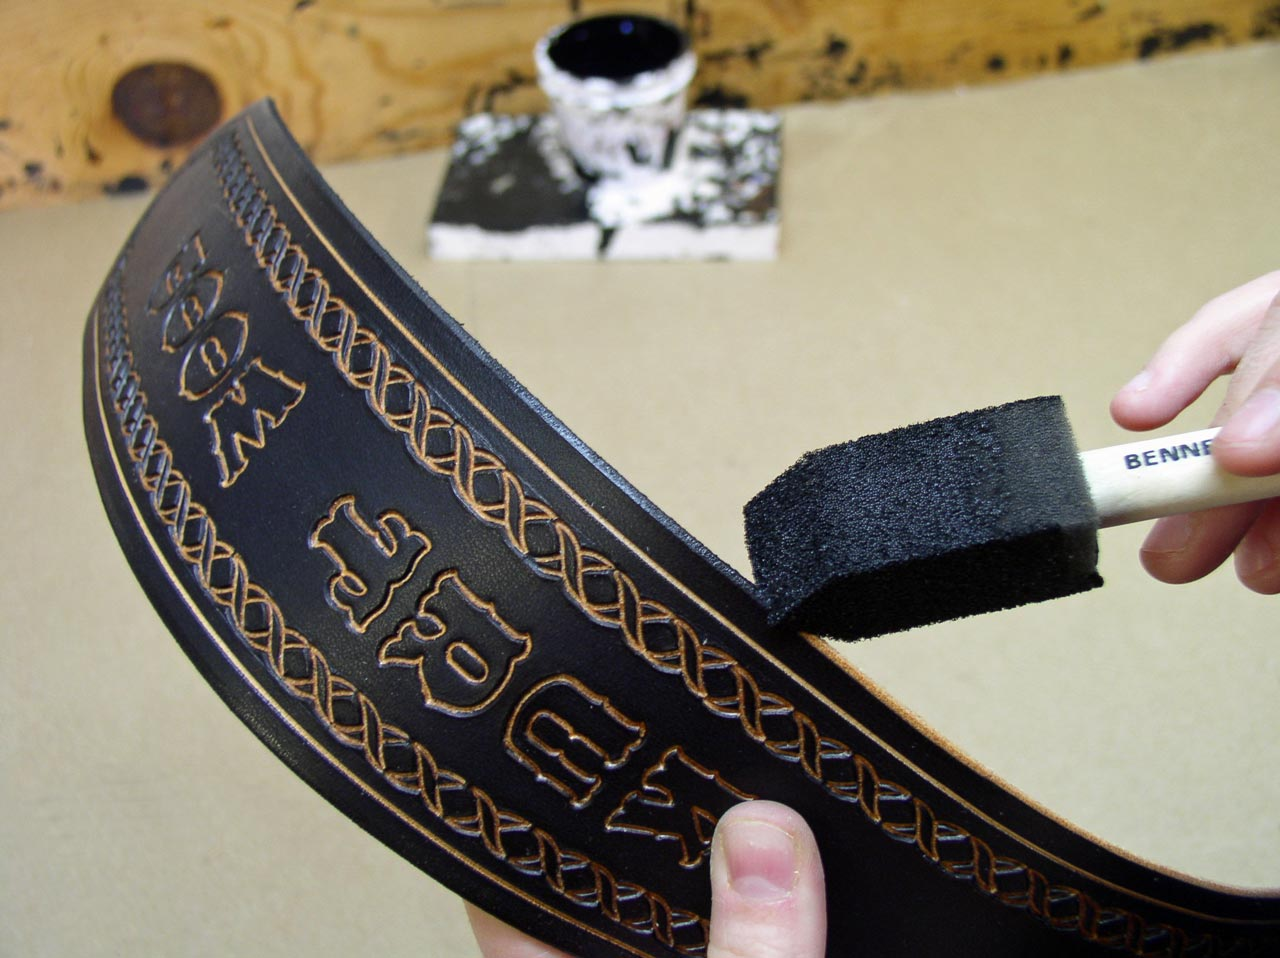 Dyeing the edge of the guitar strap